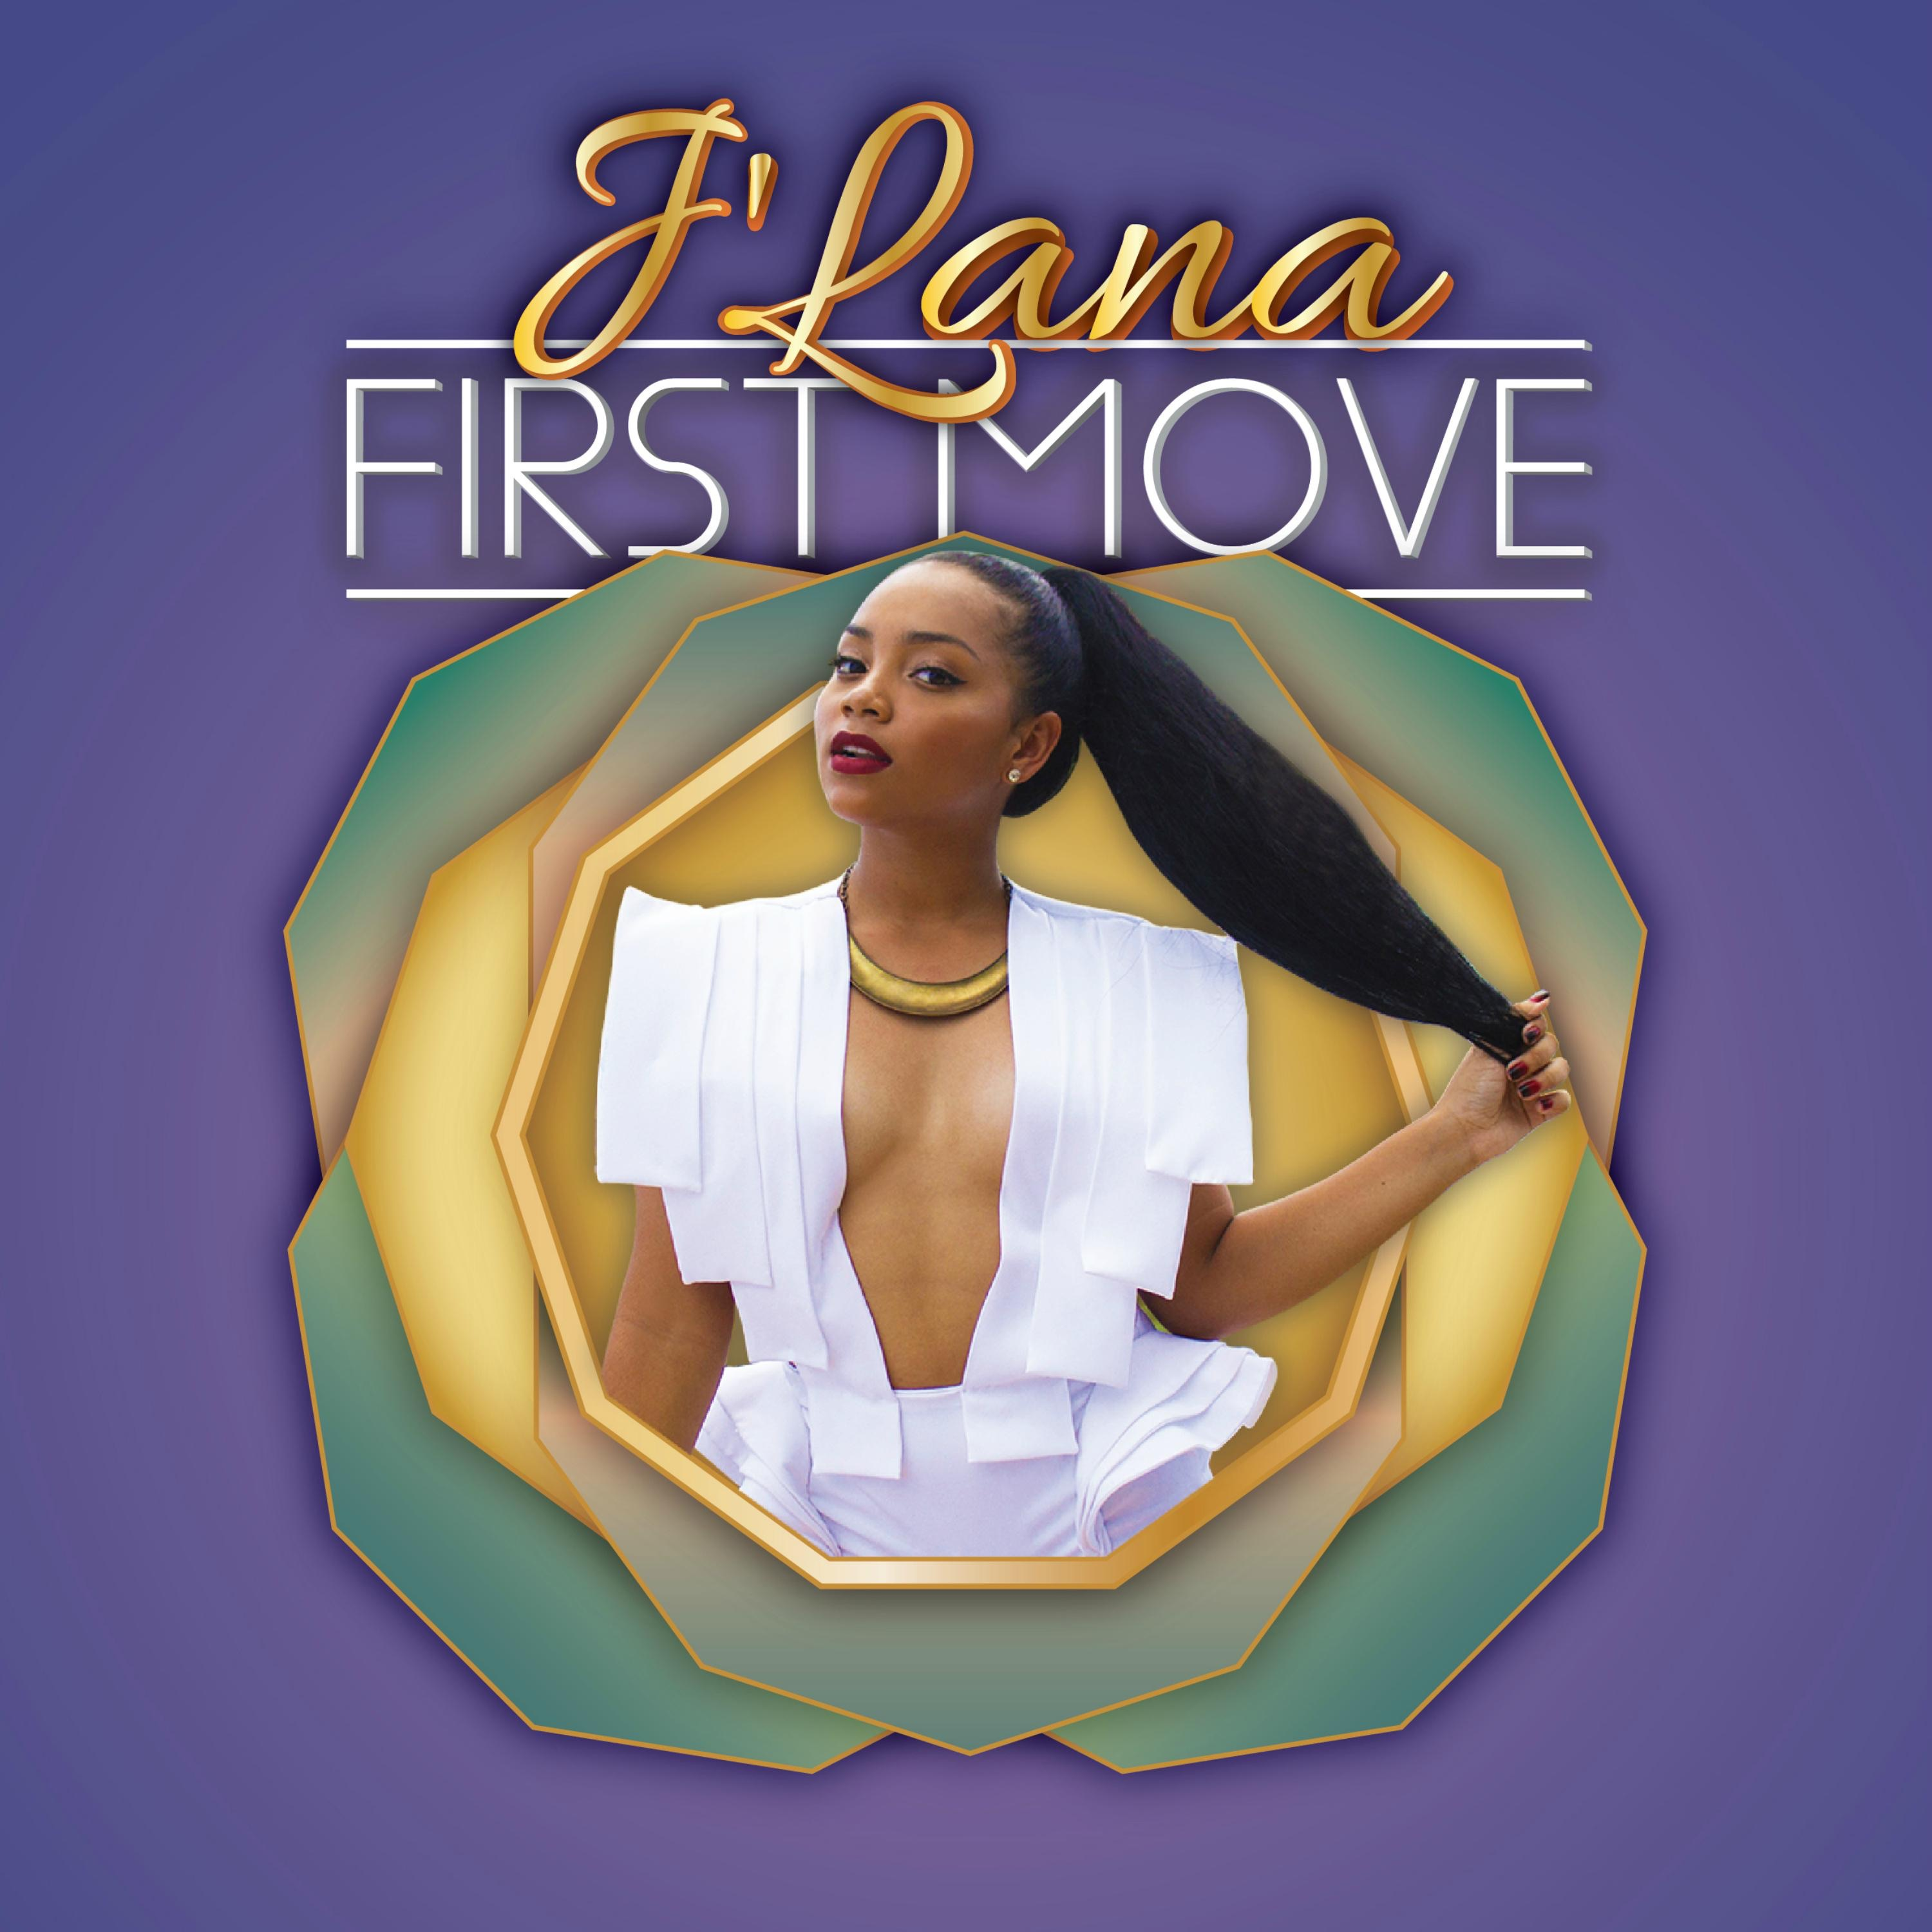 First Move (feat. Rjct) - Single